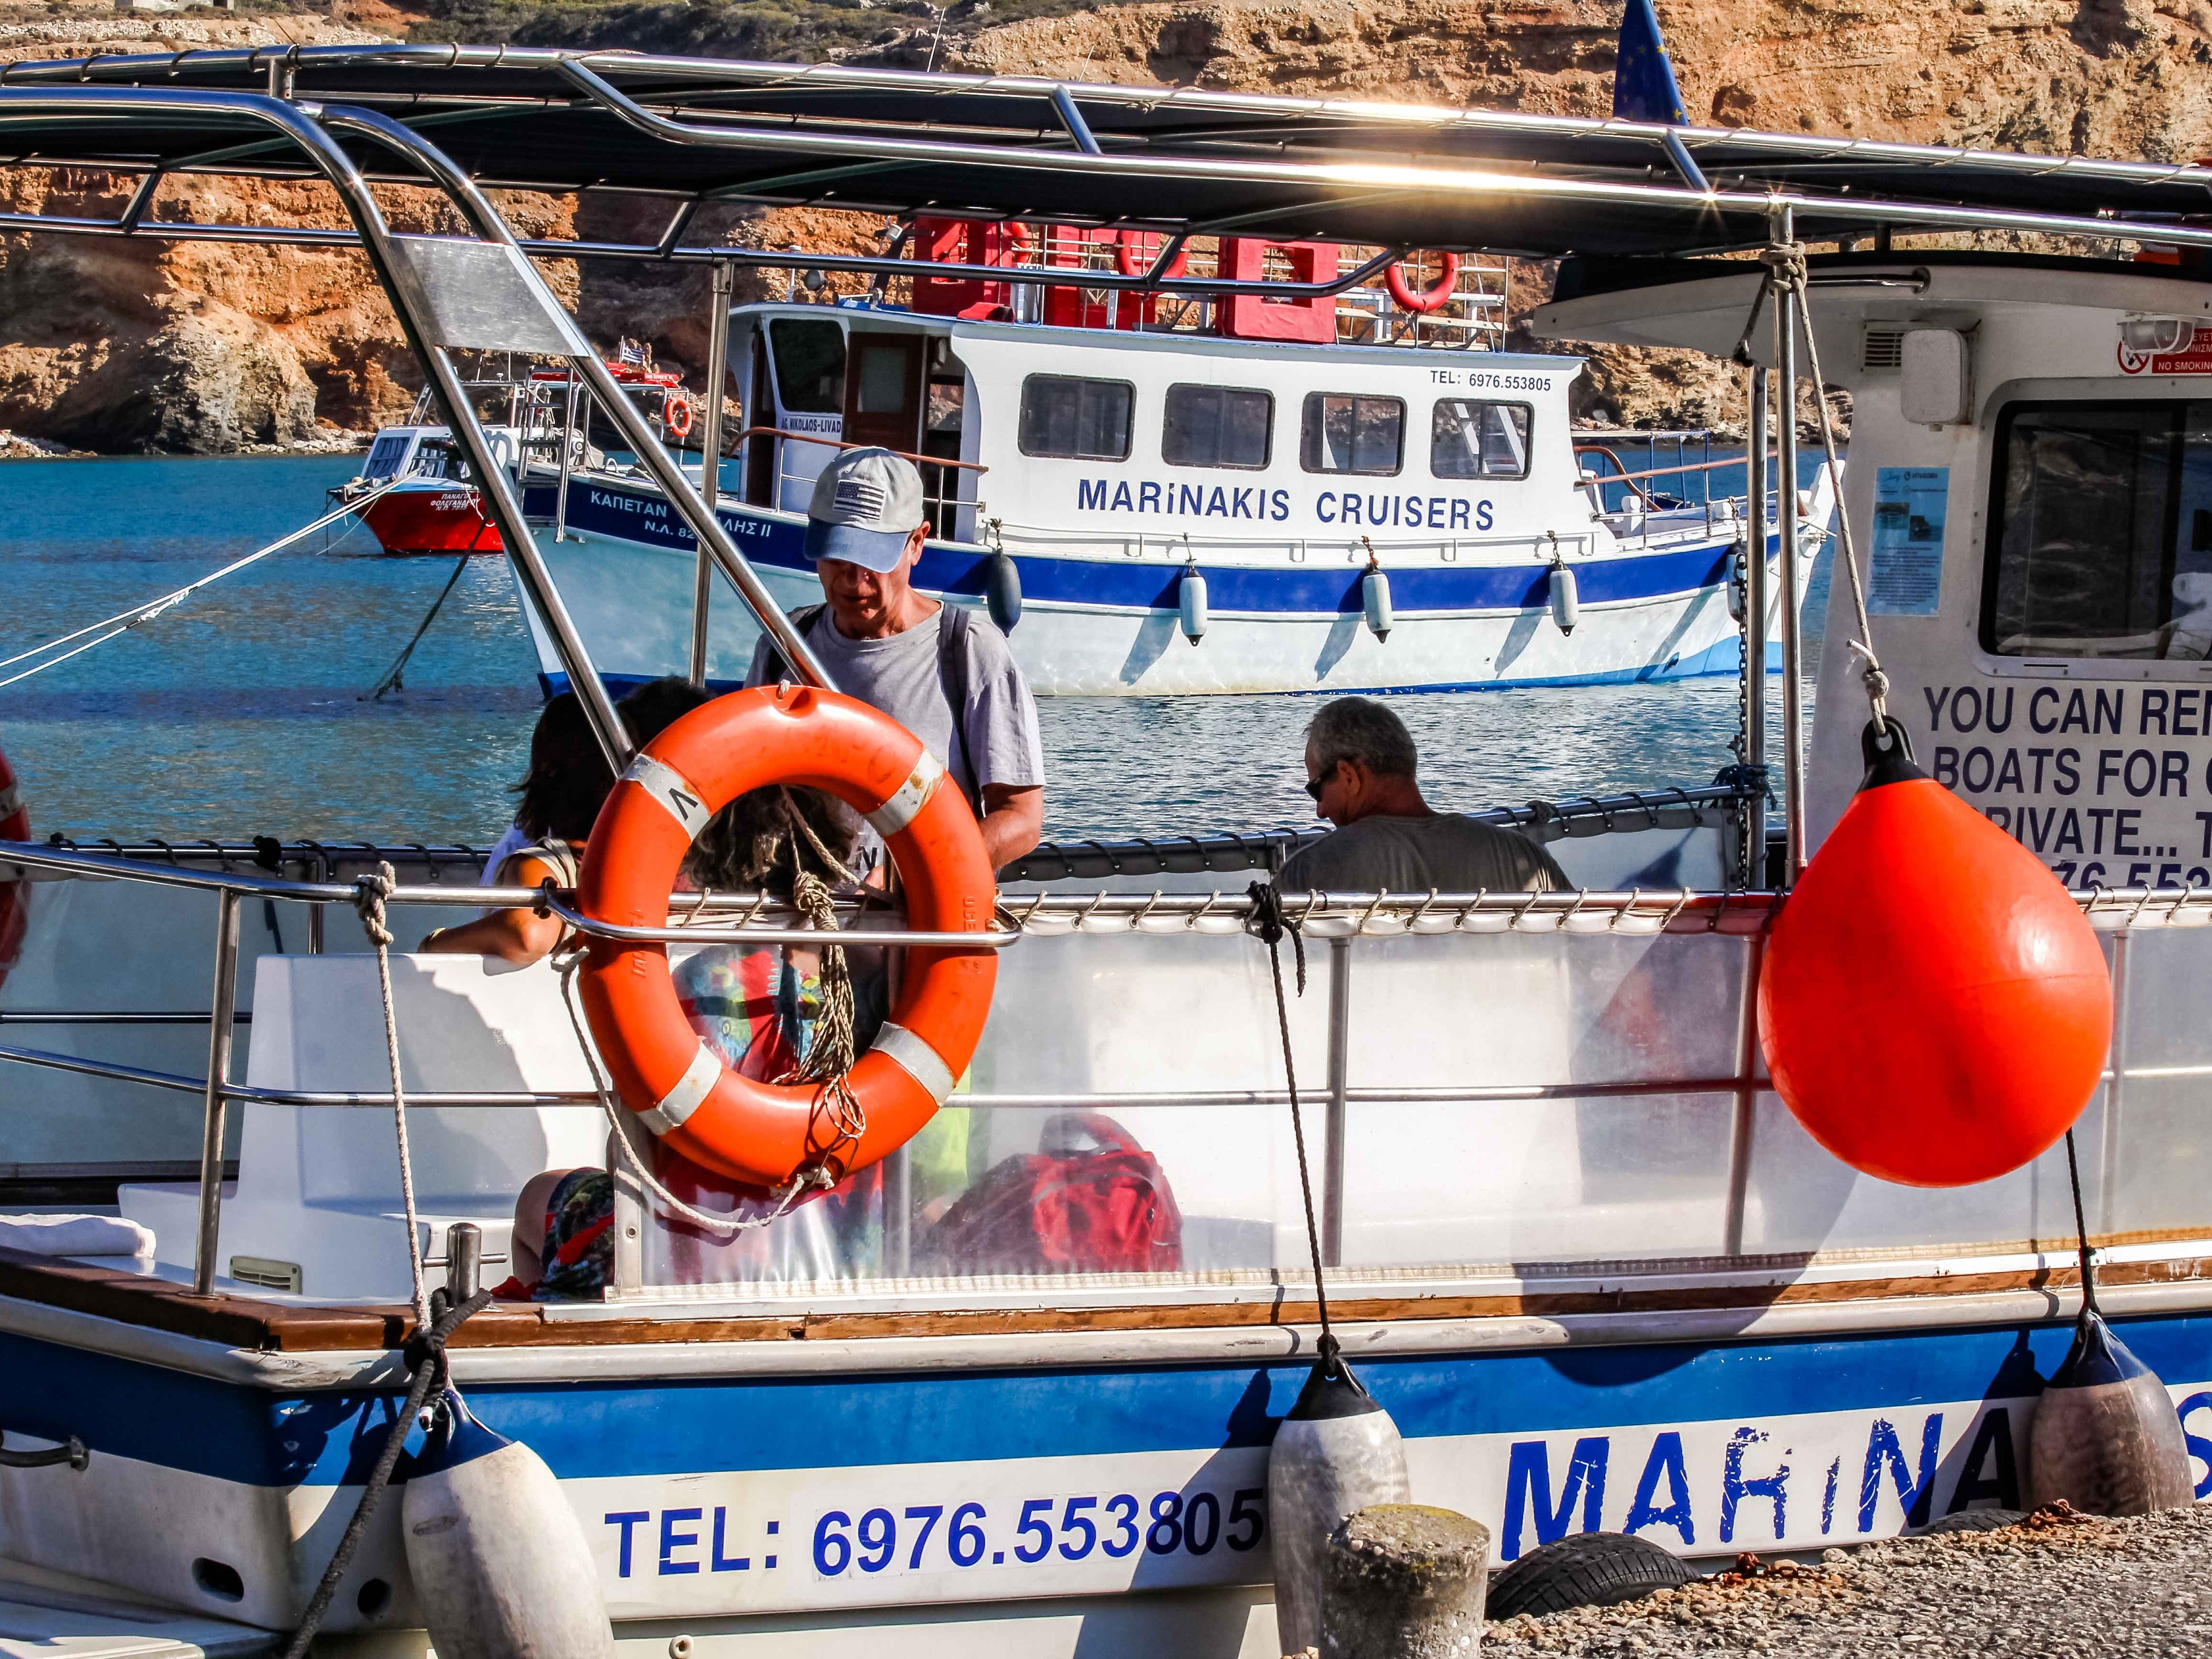 Small boats transport visitors around the steep and rocky island and also provide tours and fishing trips.